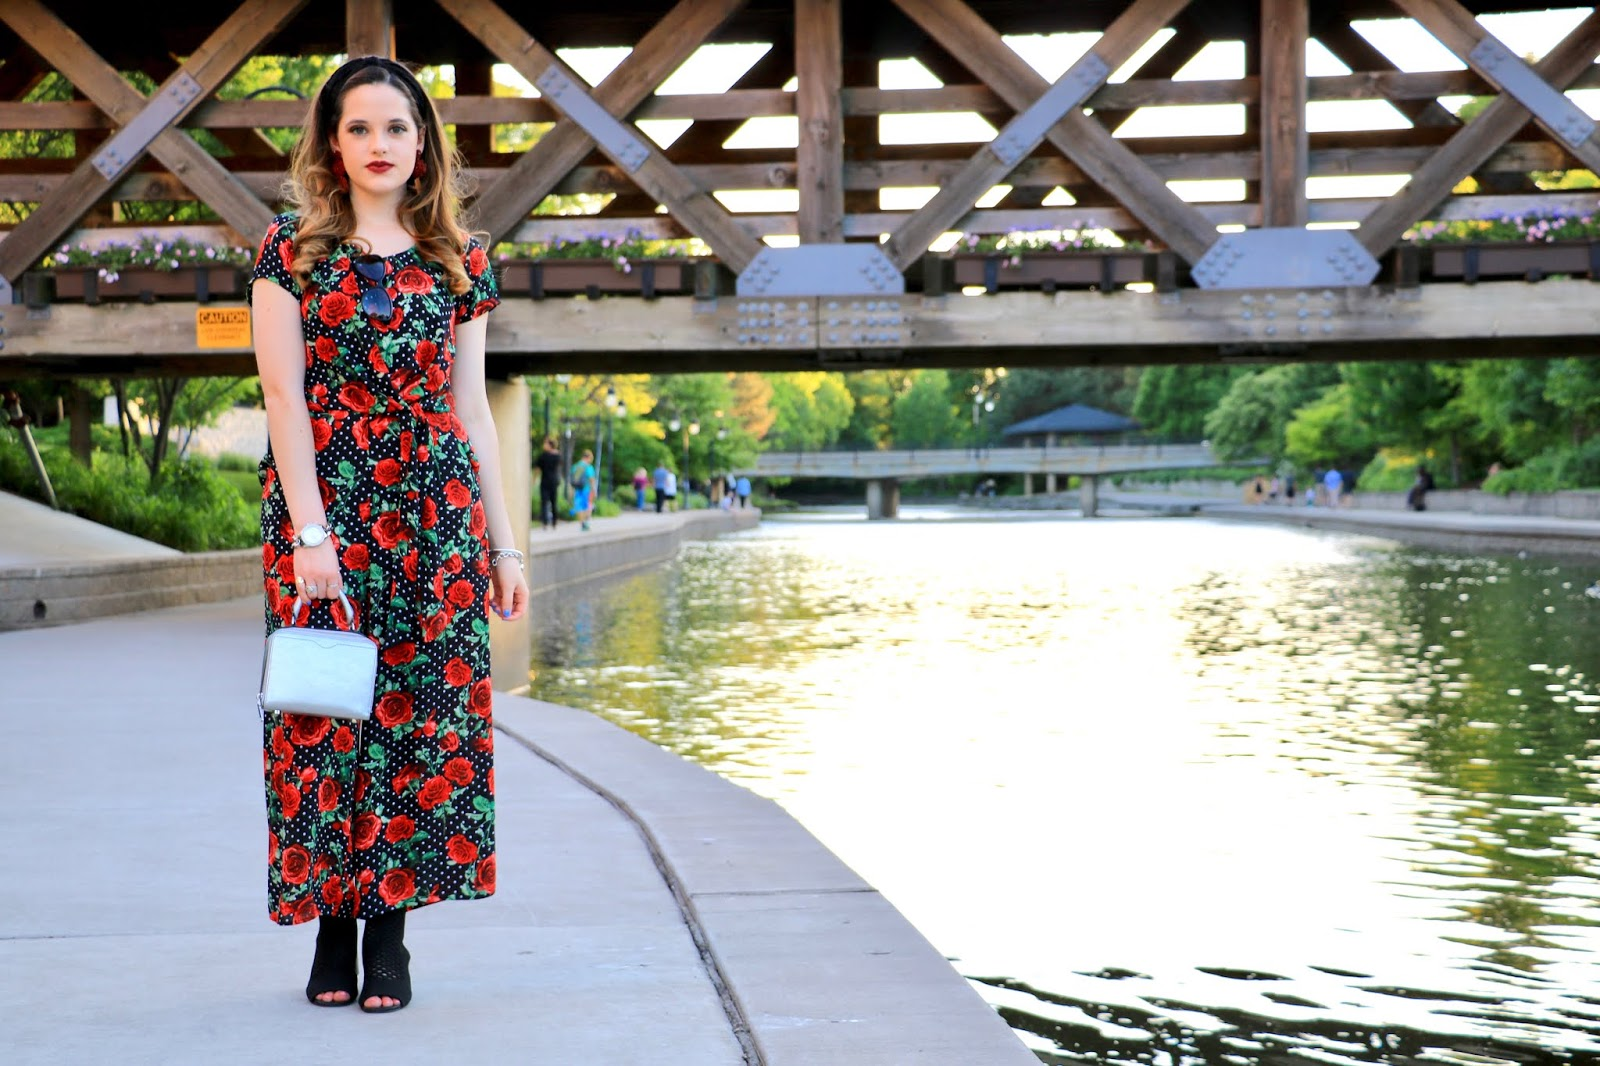 Nyc fashion blogger Kathleen Harper's Naperville Illinois photo shoot spots